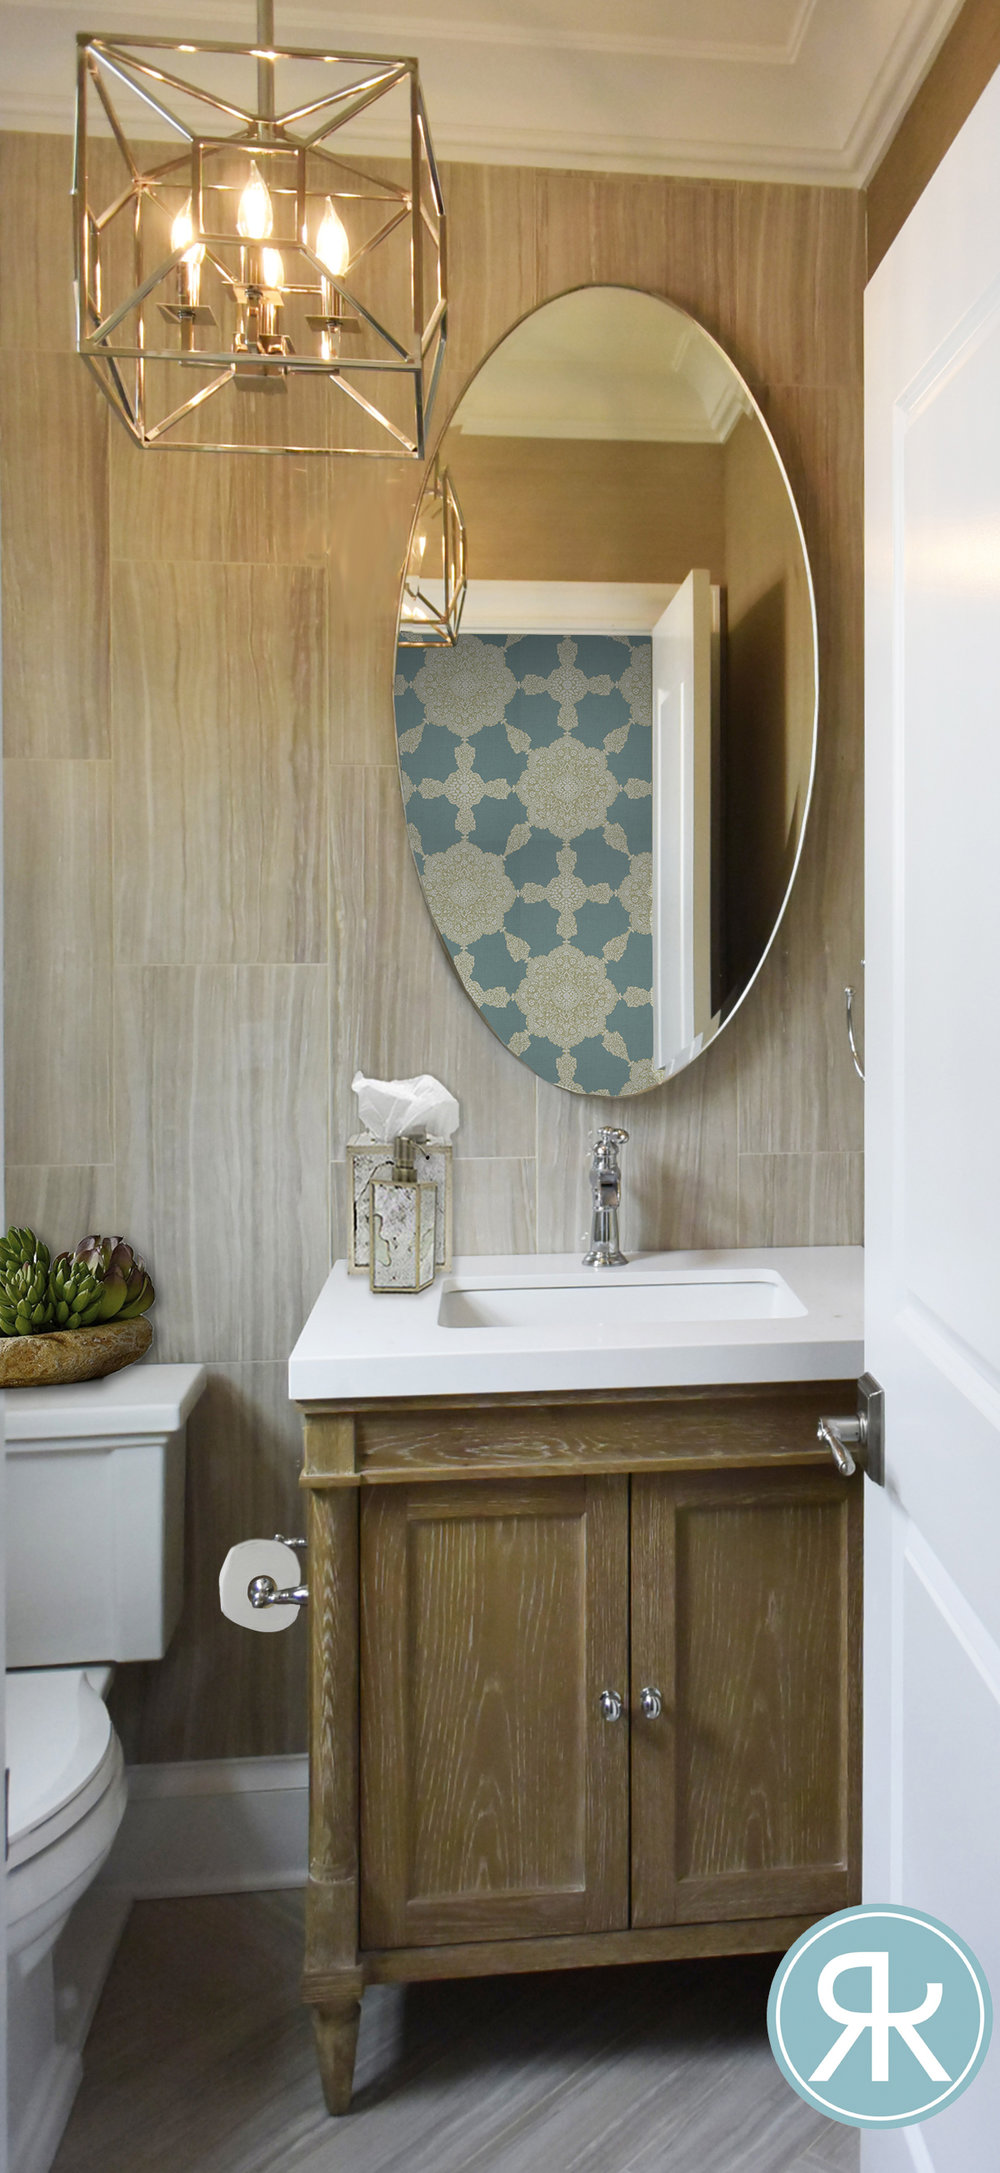 Bathroom-Texture-Tile-Porcelain-Natural-Rustic-Wood-Vanity-Bold-Pattern-Wallpaper-Crystal-Chandelier-Oval-Mirror-Smallspace-Renovation-InteriorDesign-Regina-Kay-Interiors.jpg